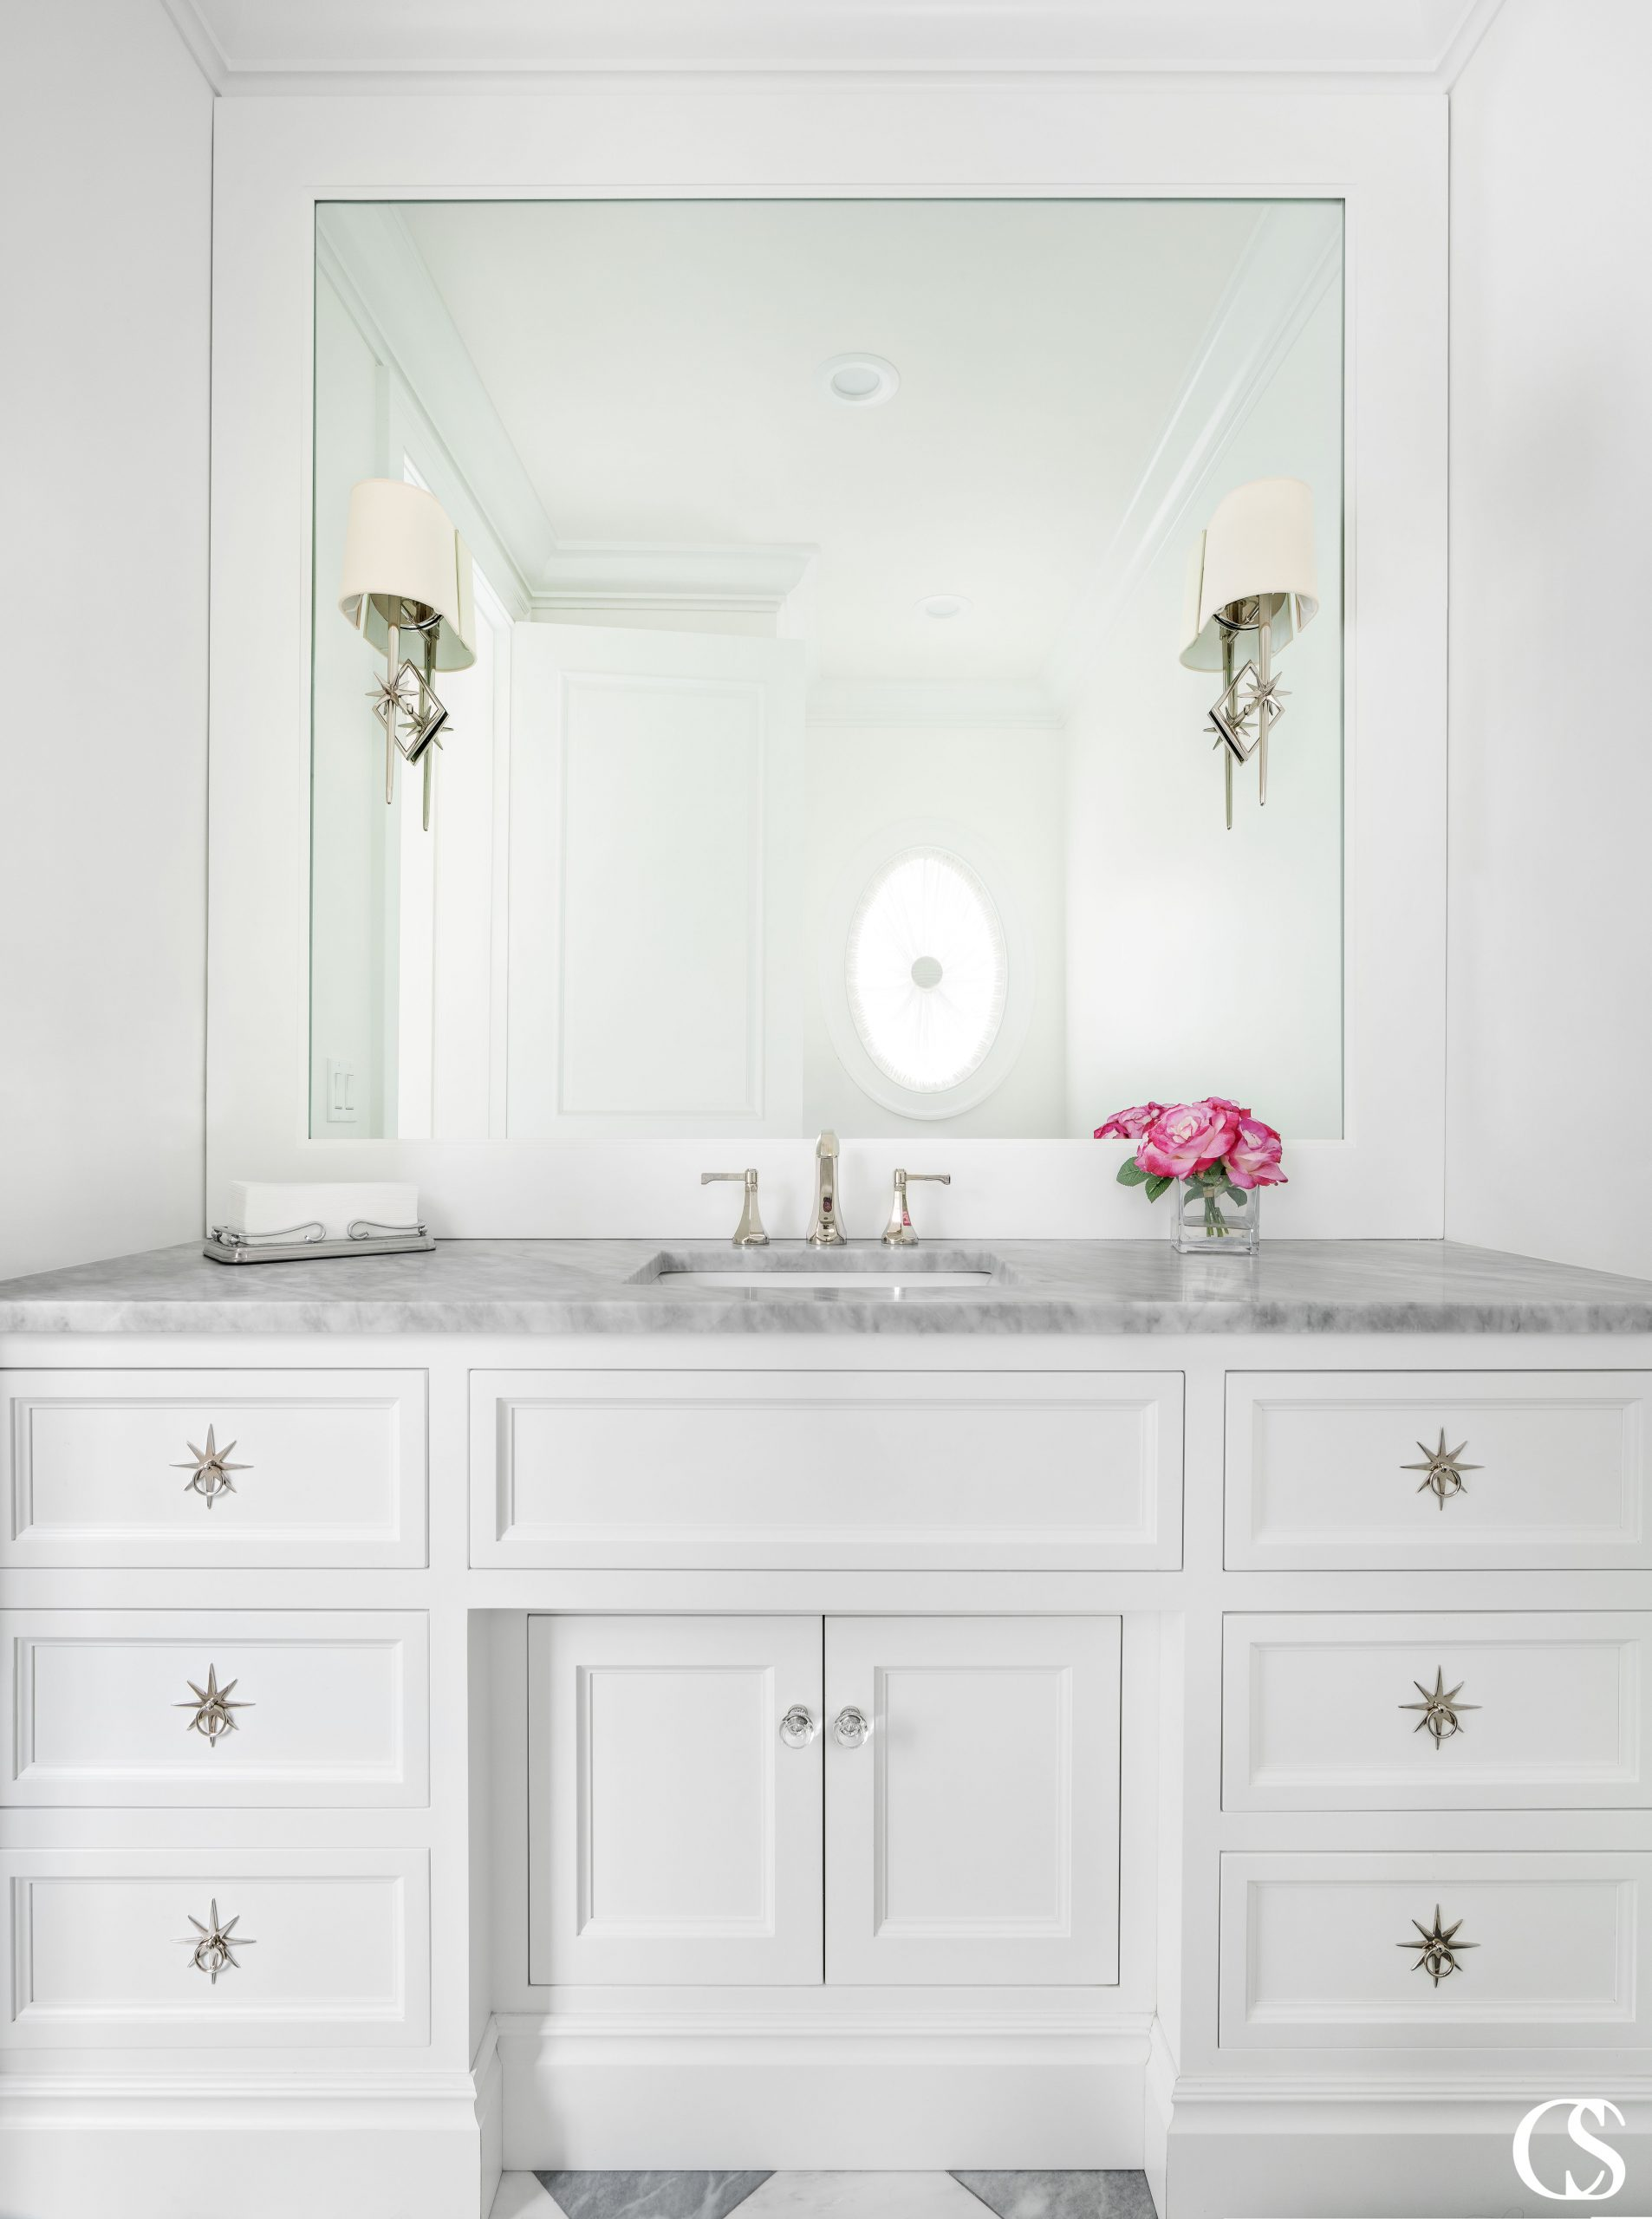 The unique starburst hardware adds such a unique flair to this white bathroom design. What kind of hardware would you pick?